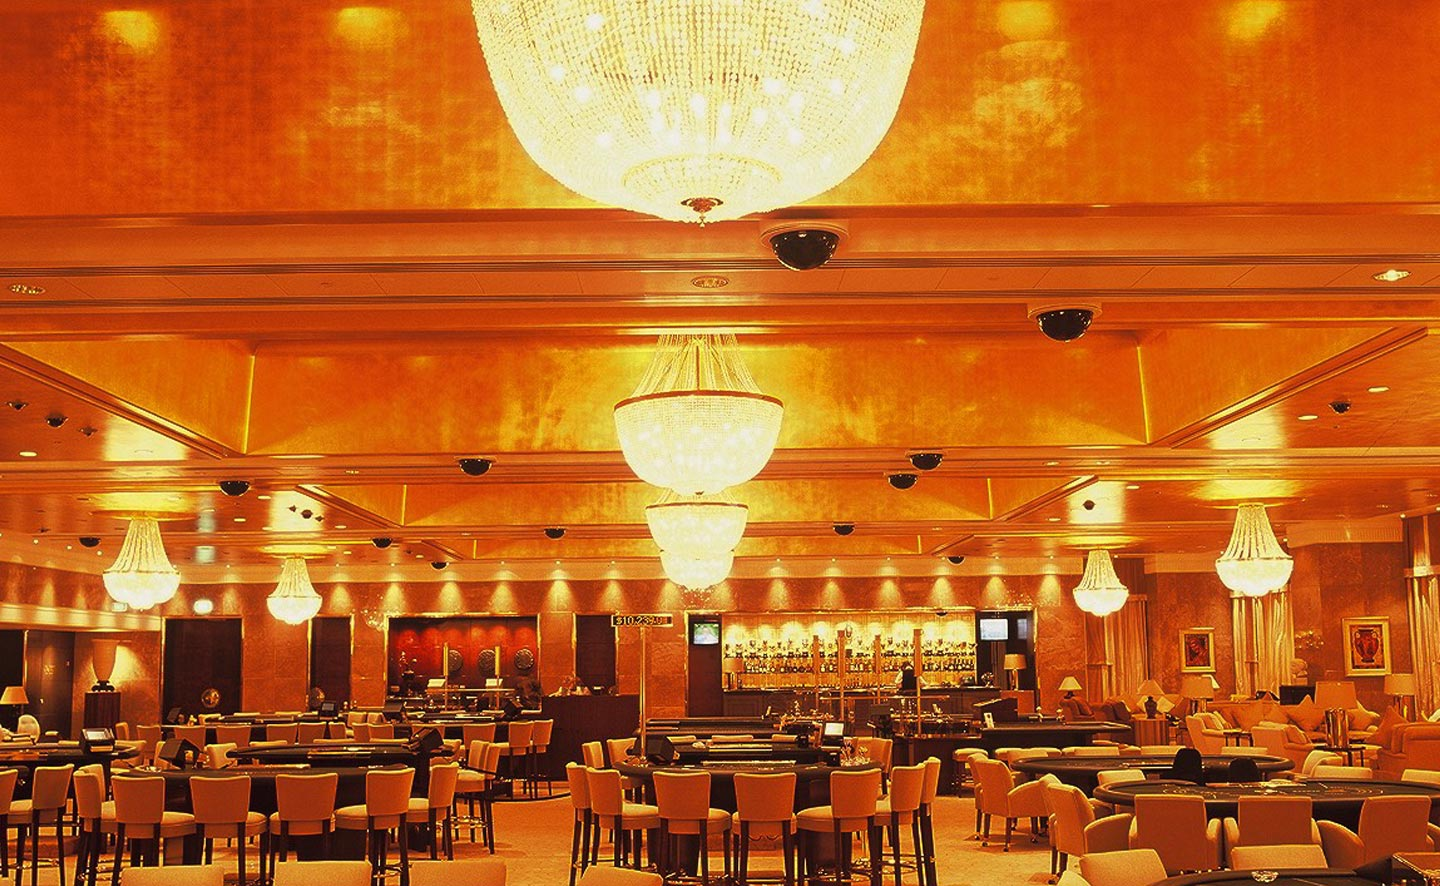 Lucky Gold leaf ceiling at Crown Casino Macau Melbourne Mahogany room